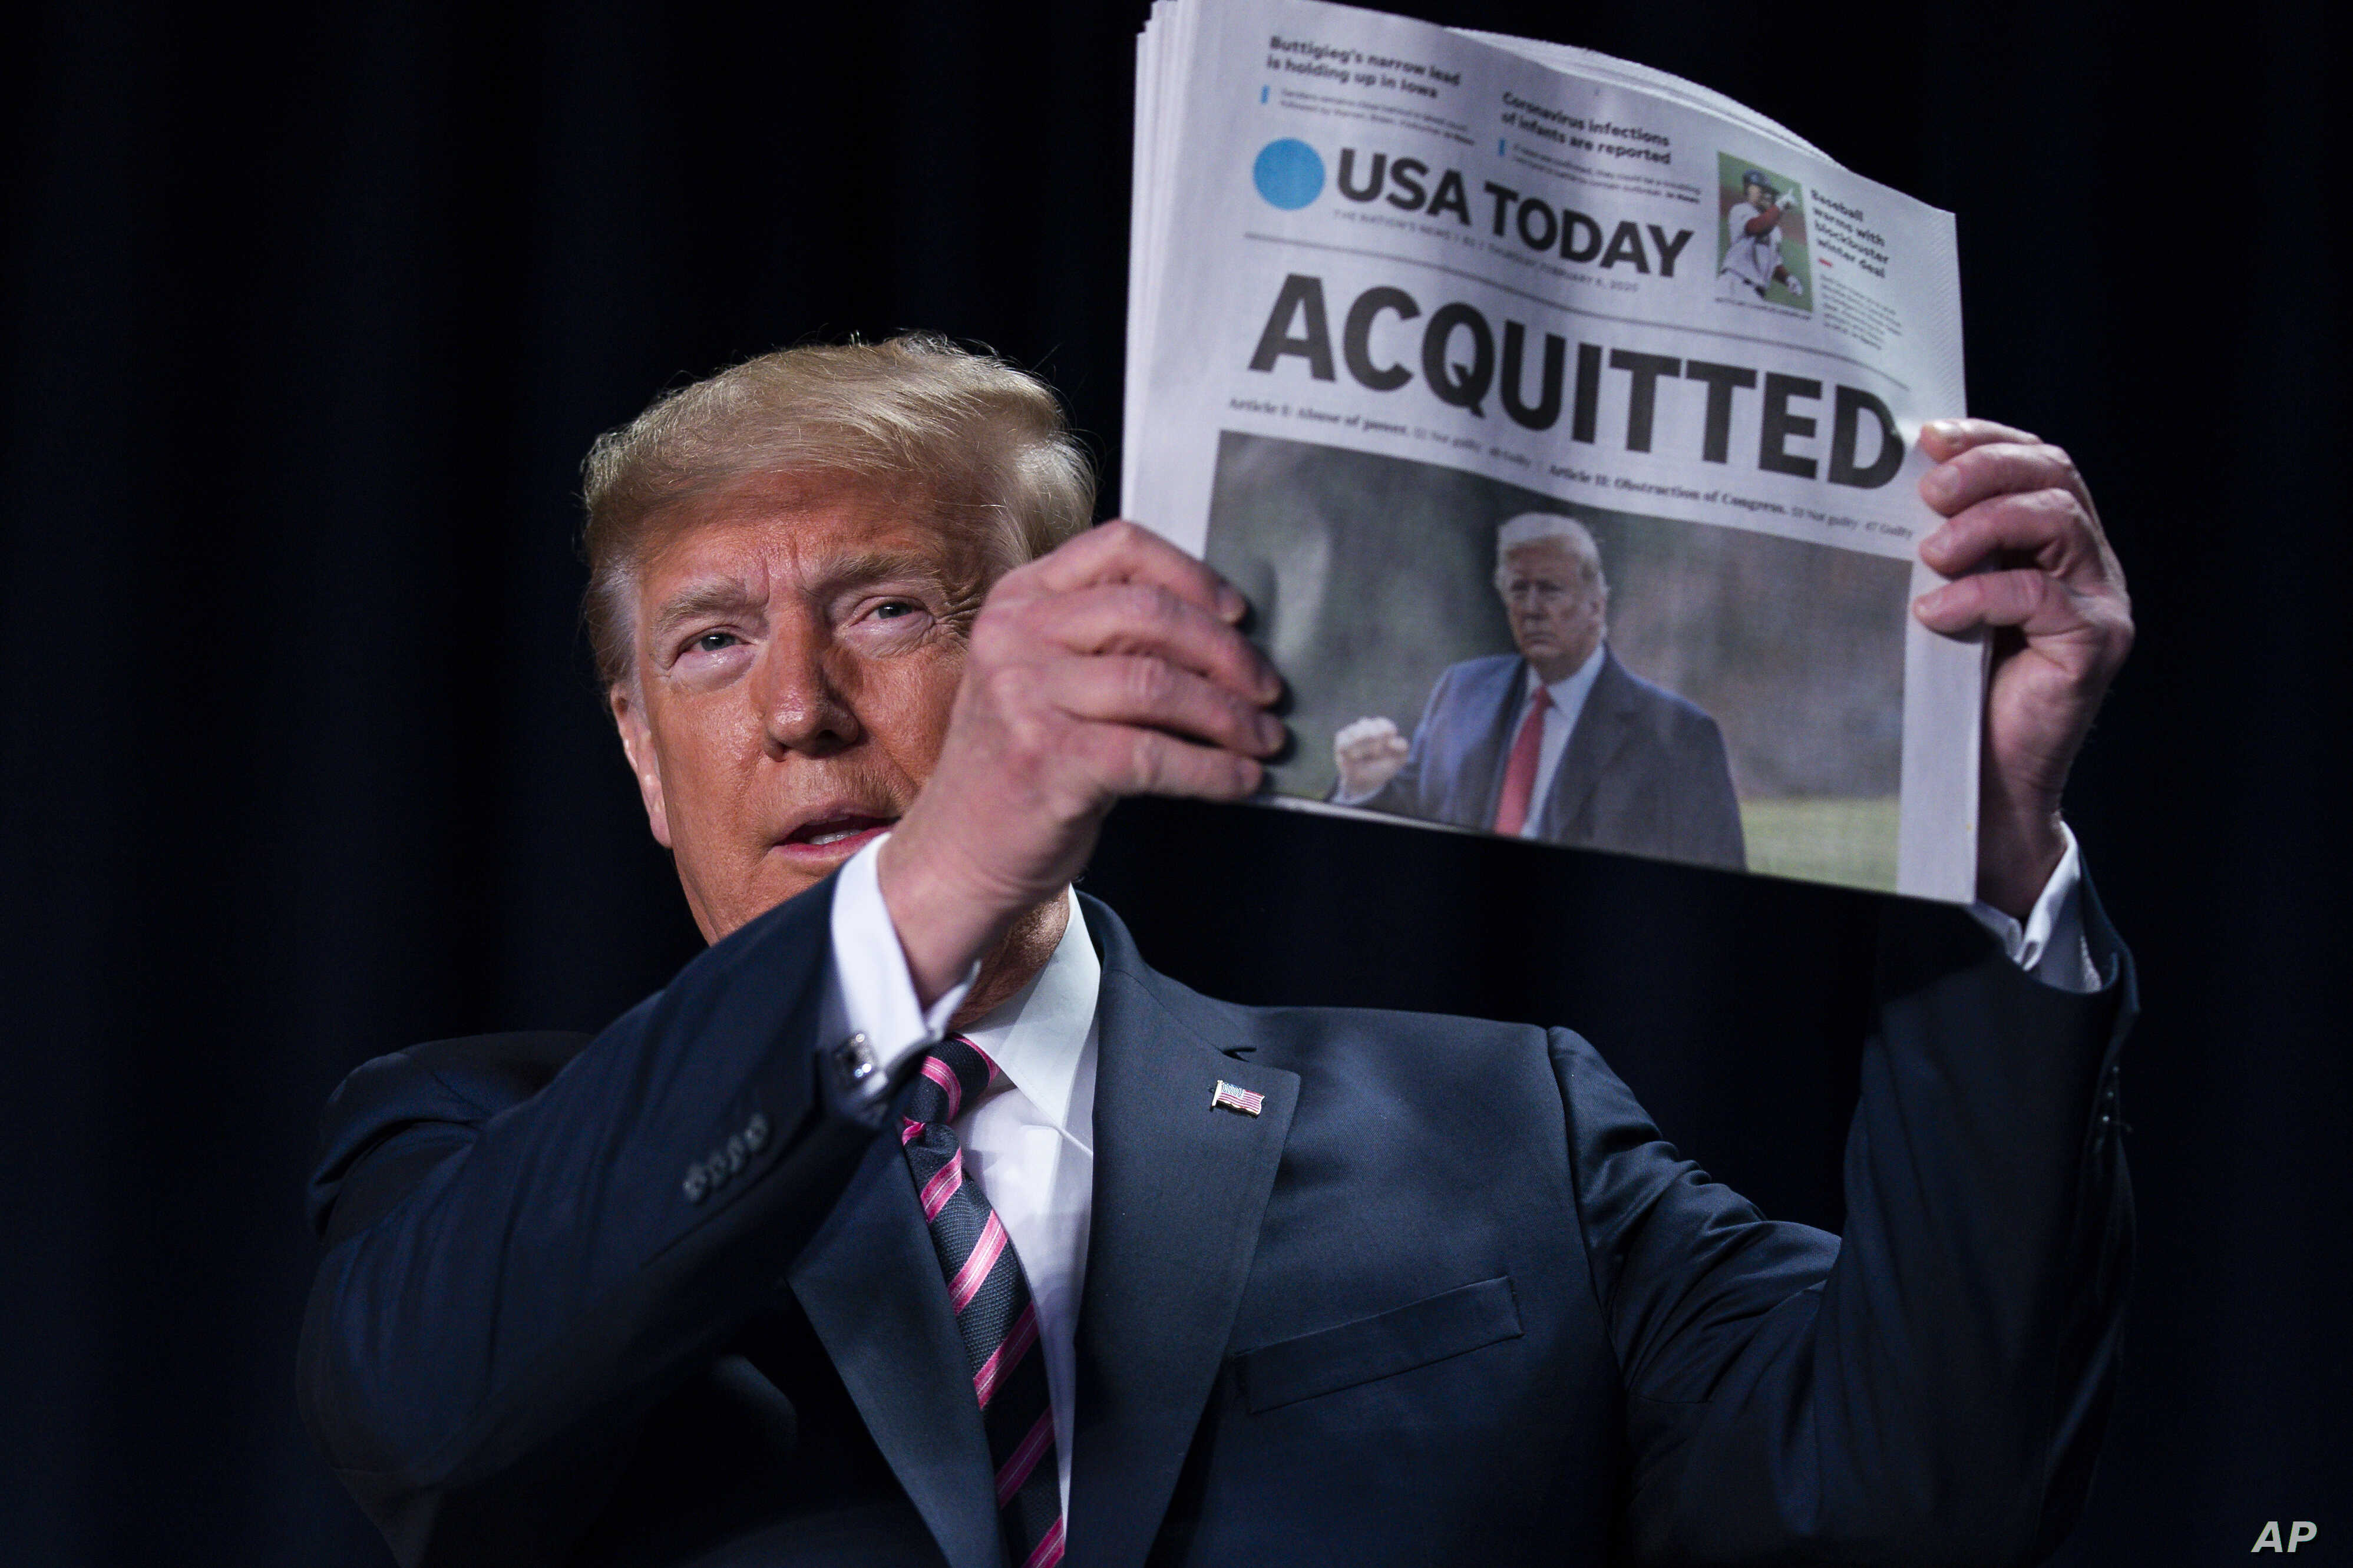 Former U.S. President Donald Trump acquitted in 2nd impeachment trial